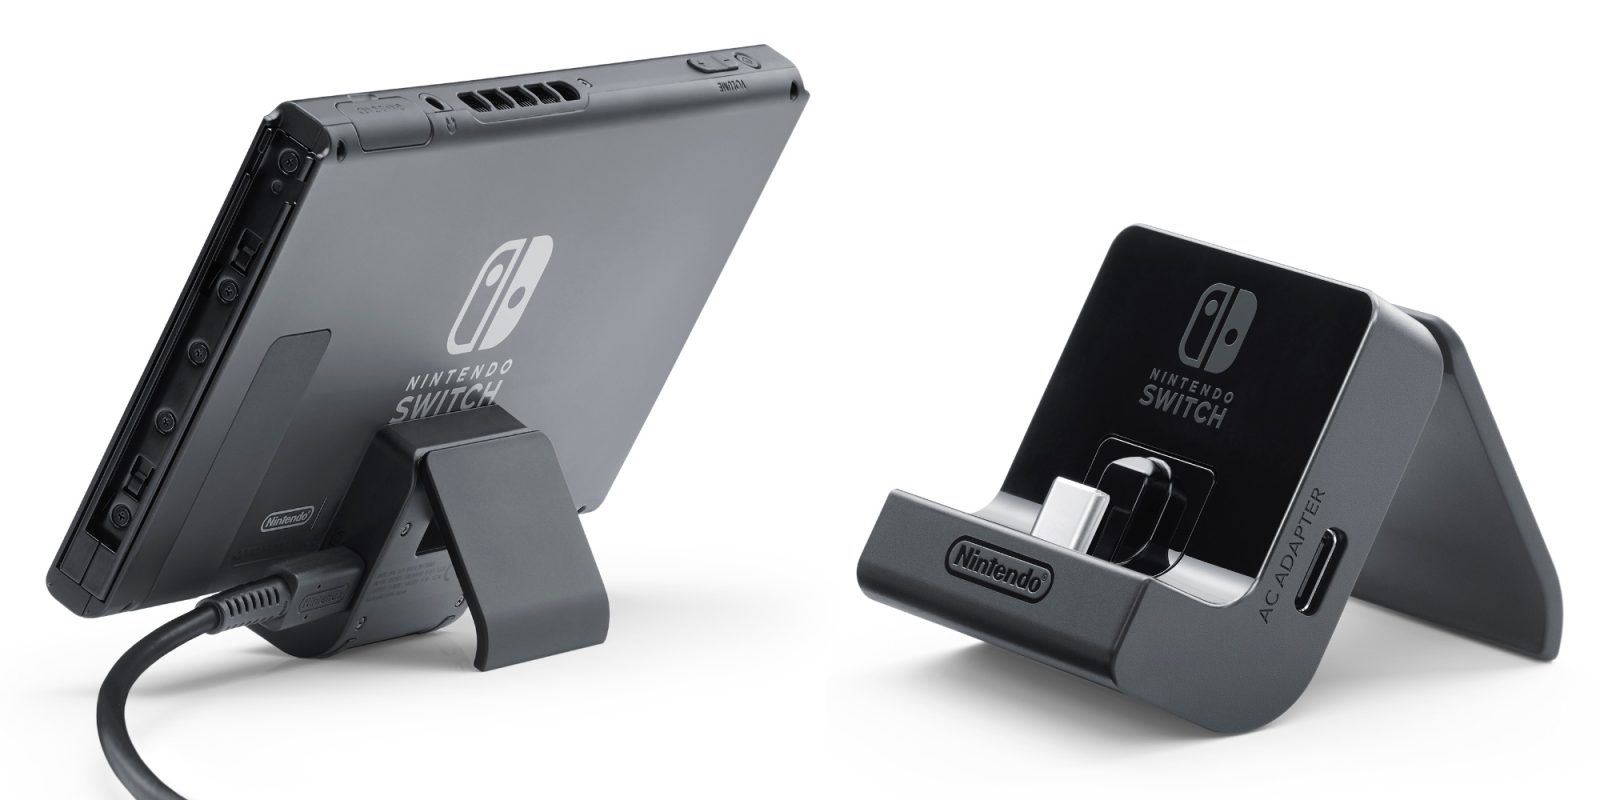 Nintendo's Adjustable Switch Charging Stand hits a new all-time low at $16.50